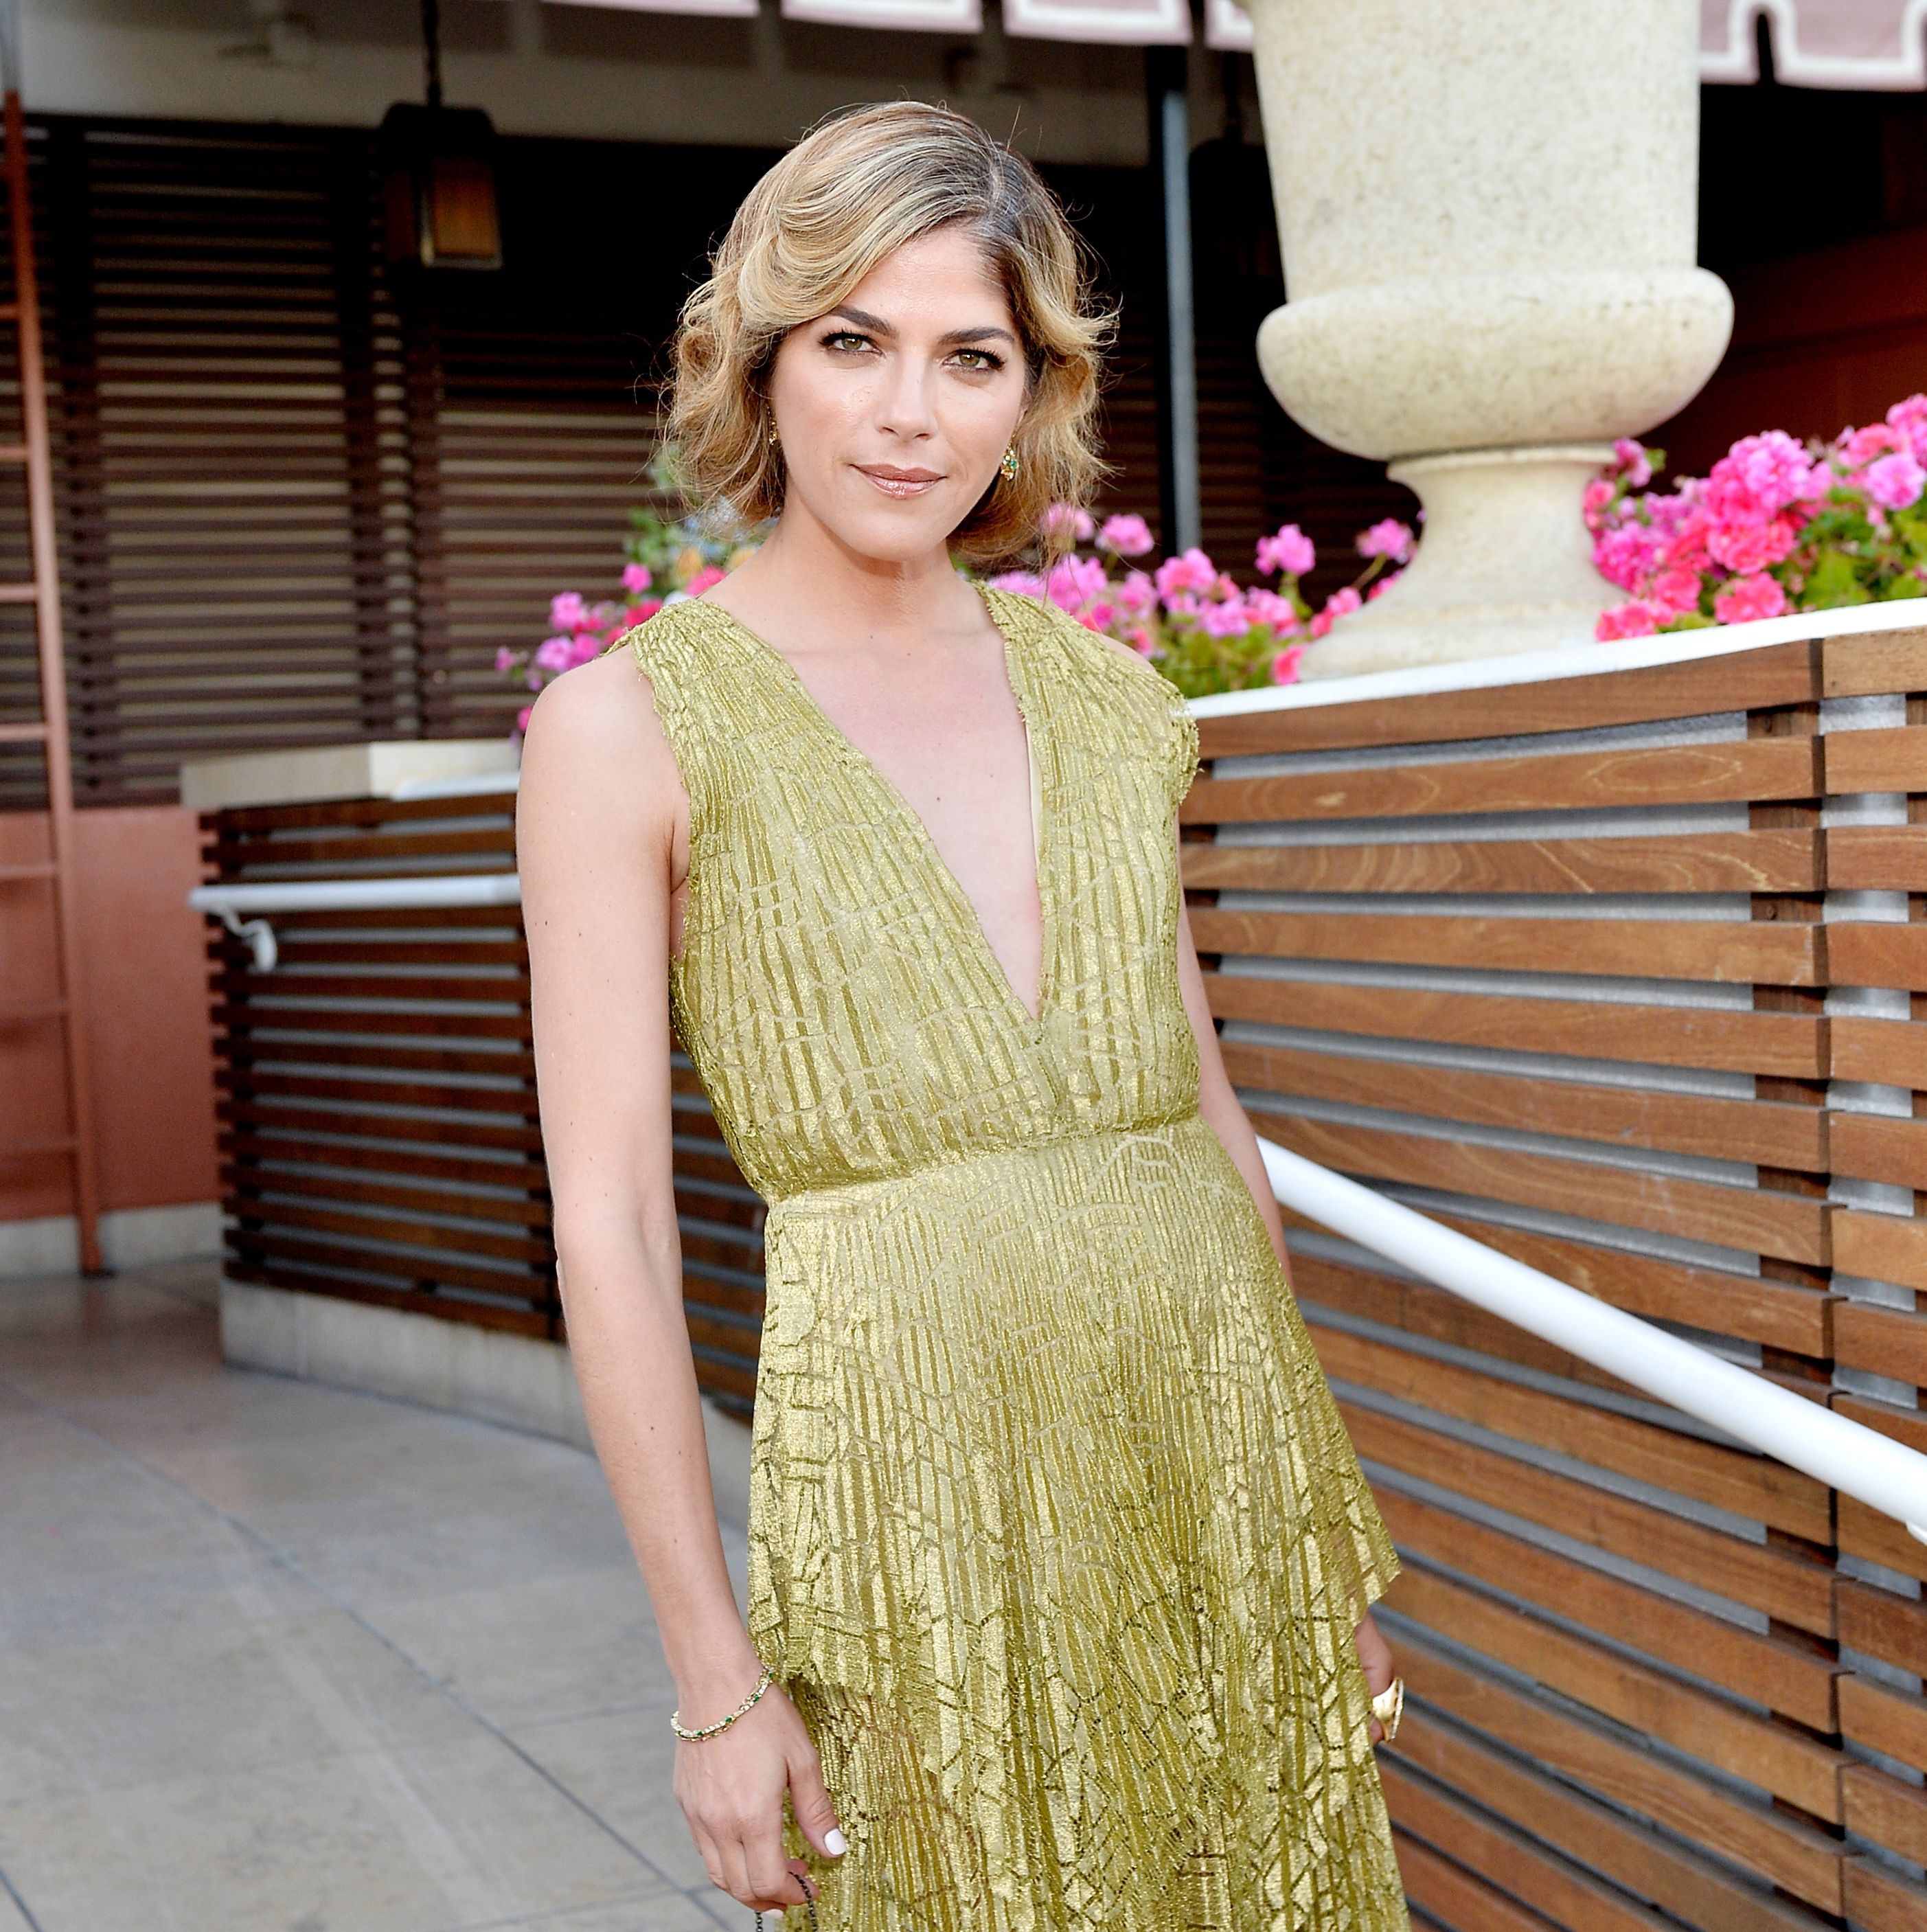 Selma Blair Is Now Using a Cane to Deal With Multiple Sclerosis Symptoms